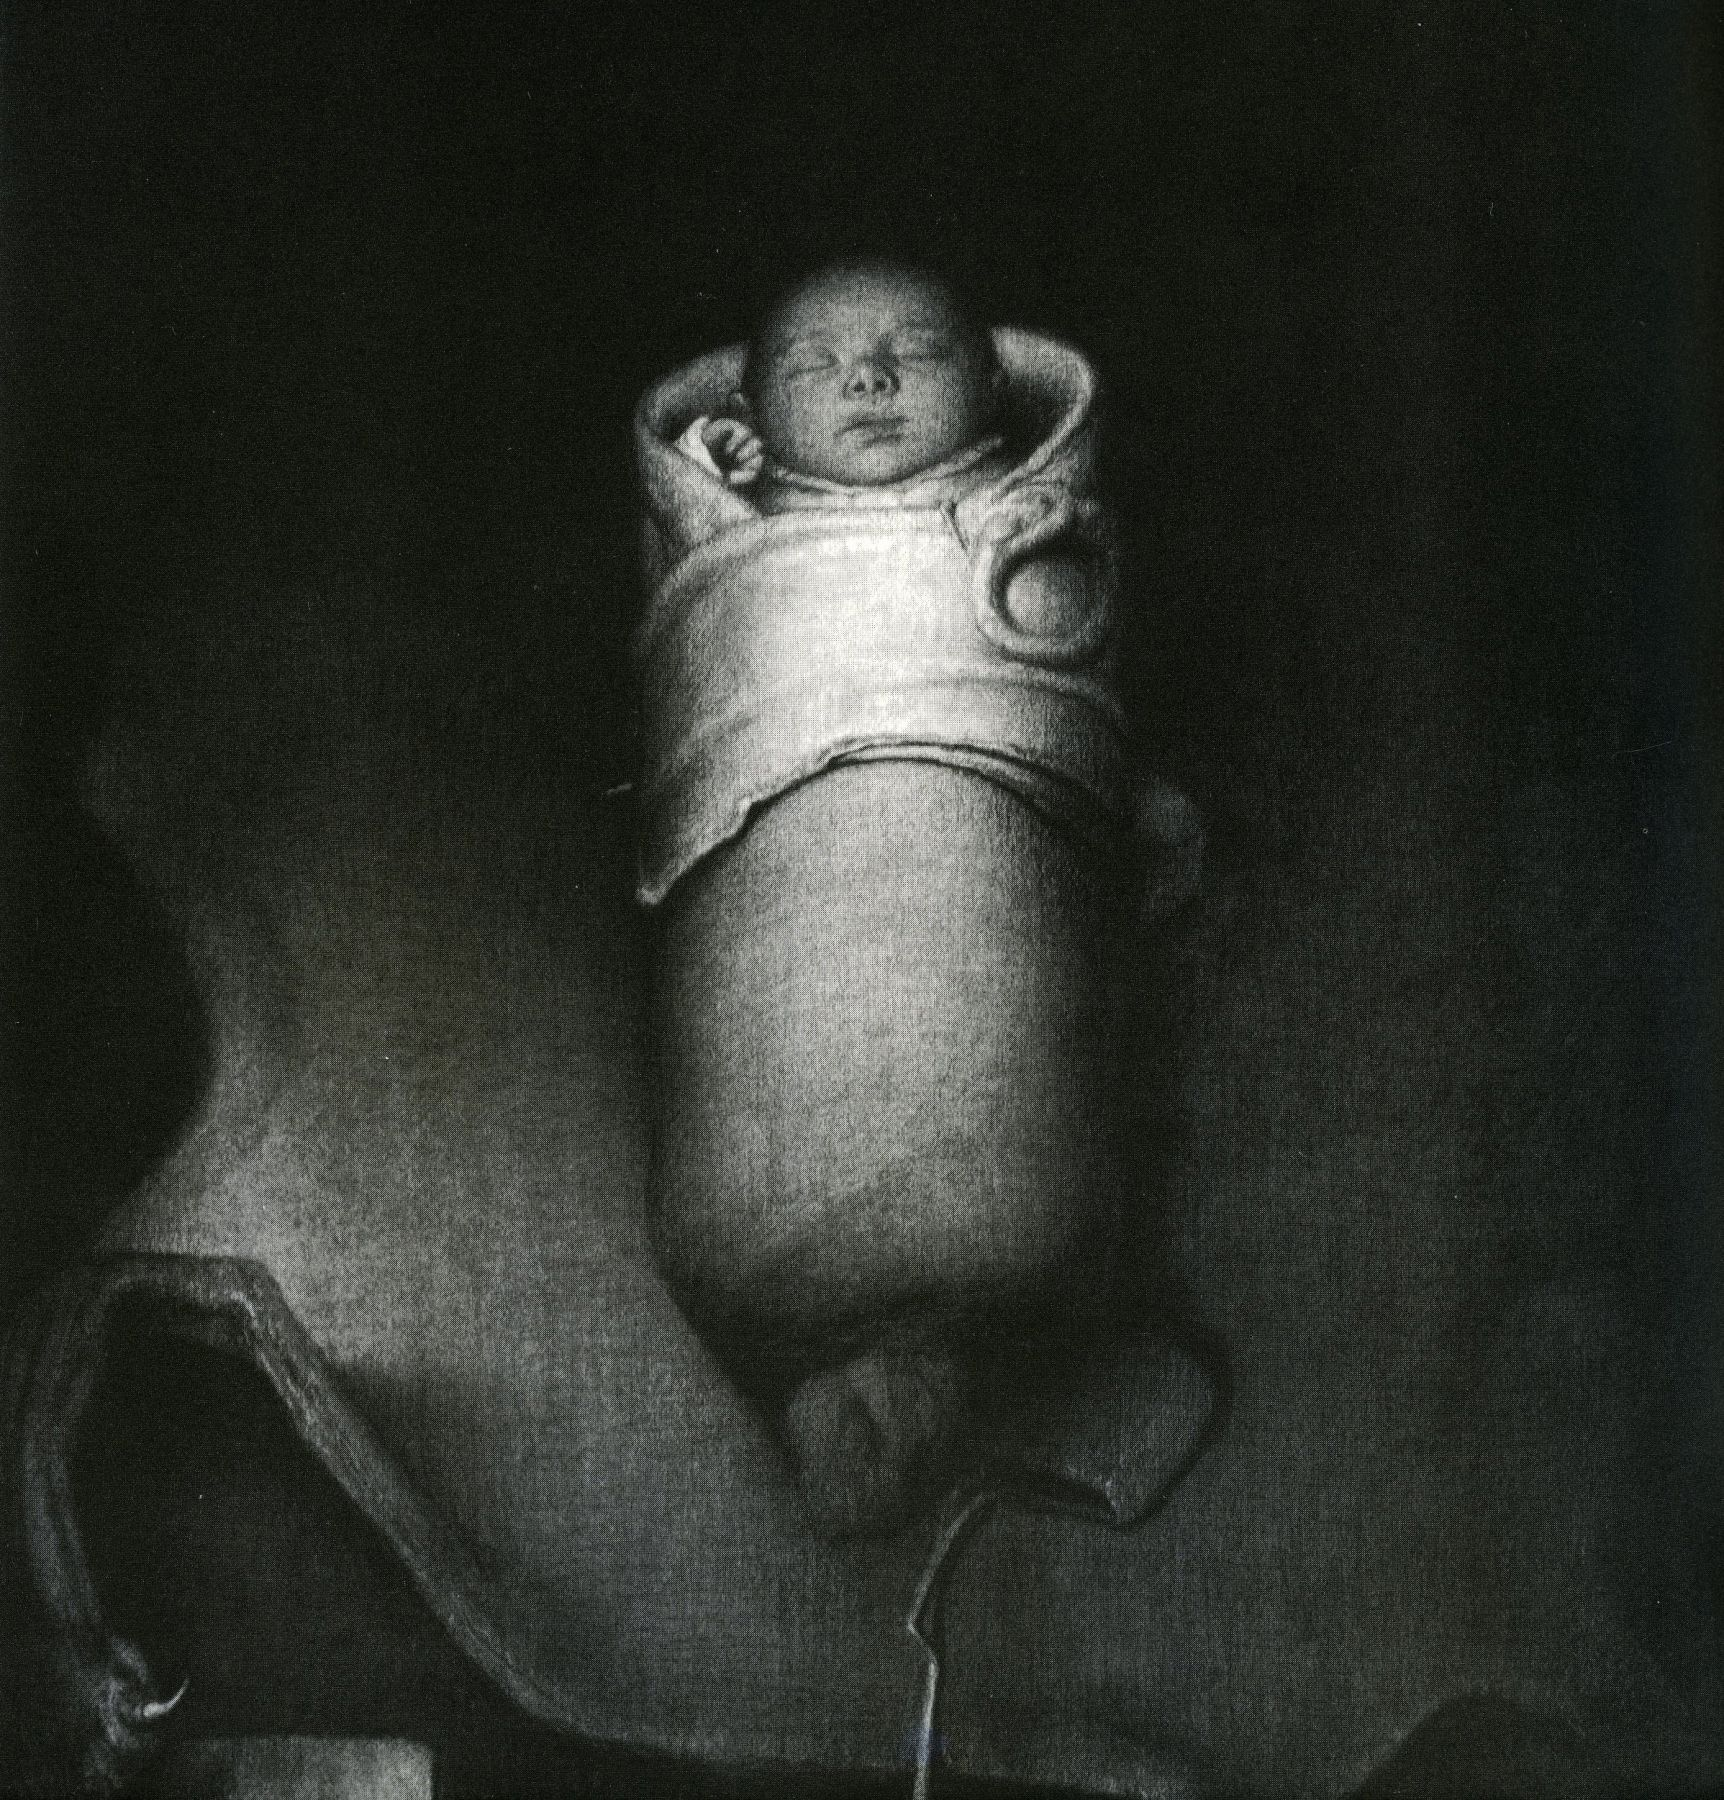 Odd Nerdrum, New Born, 1994, charcoal on paper, 31 1/2 x 27 1/2 inches